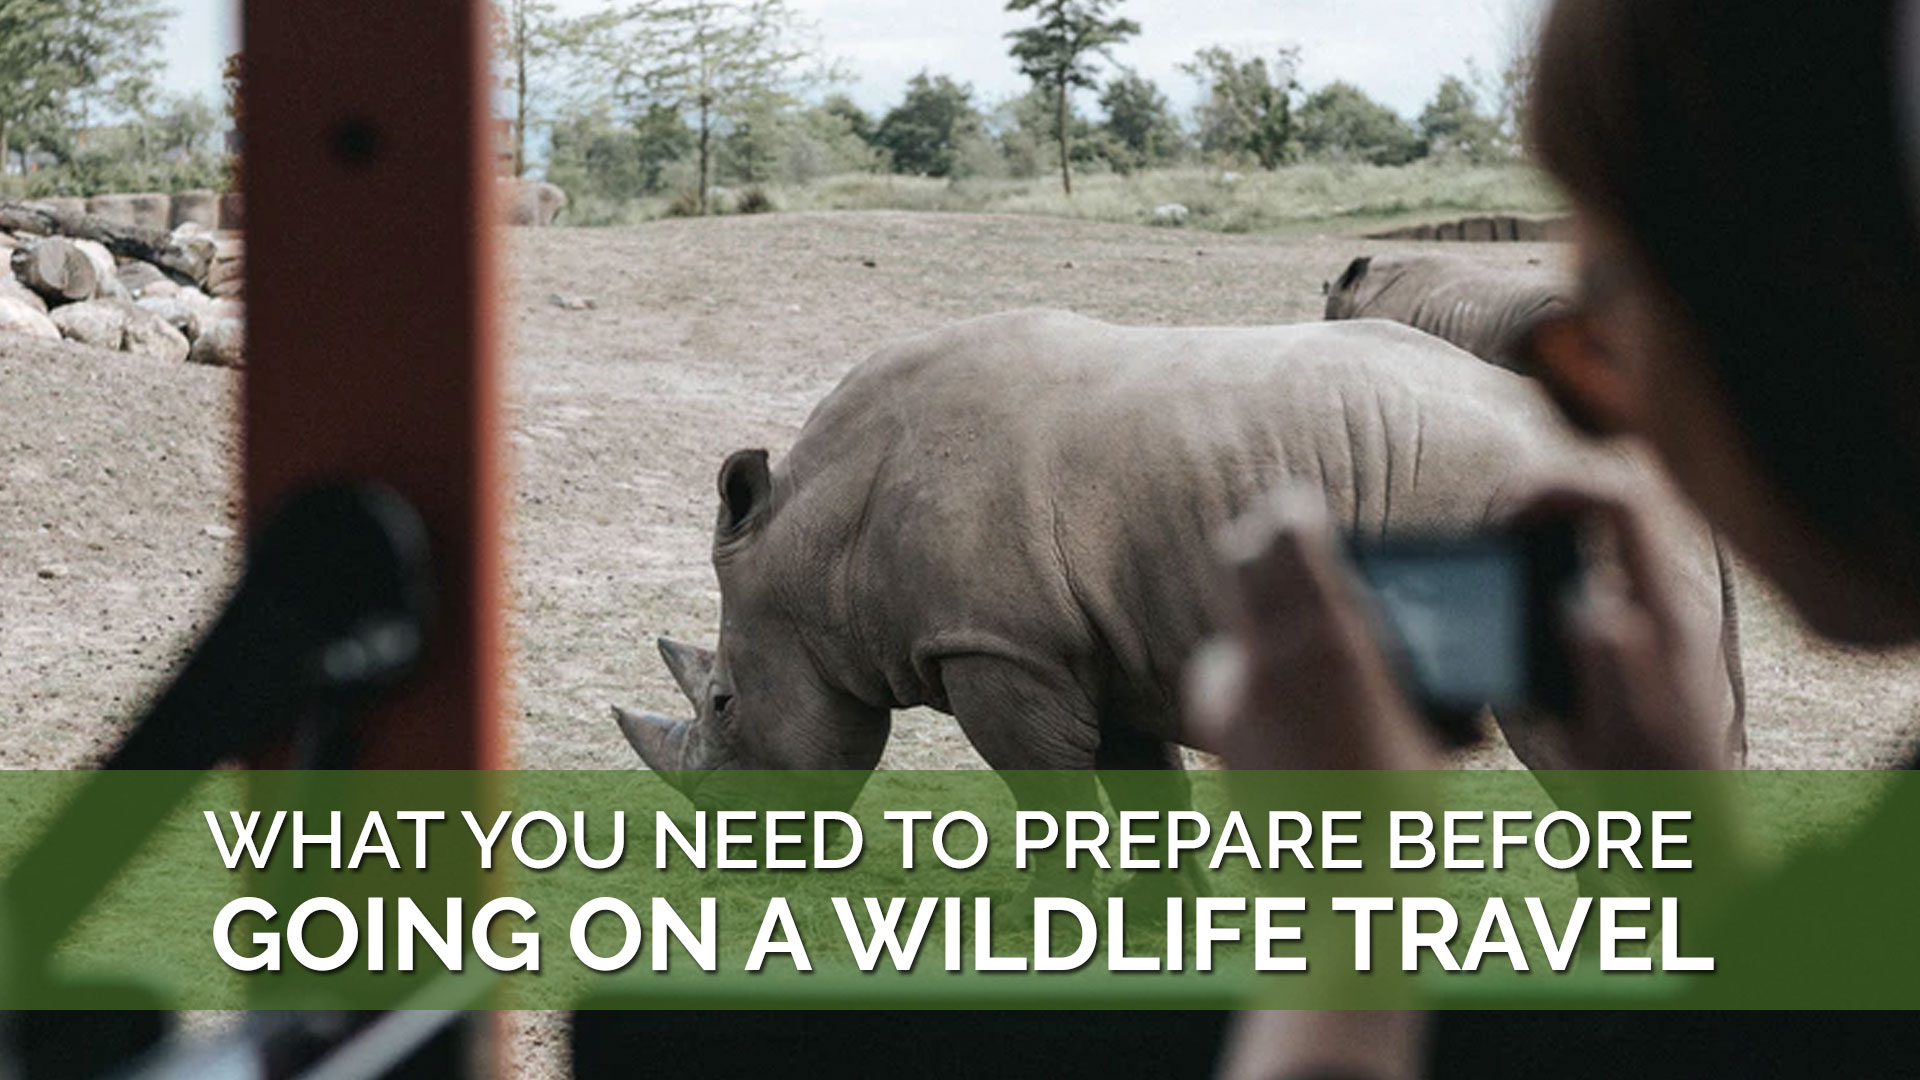 What You Need To Prepare Before Going On A Wildlife Travel